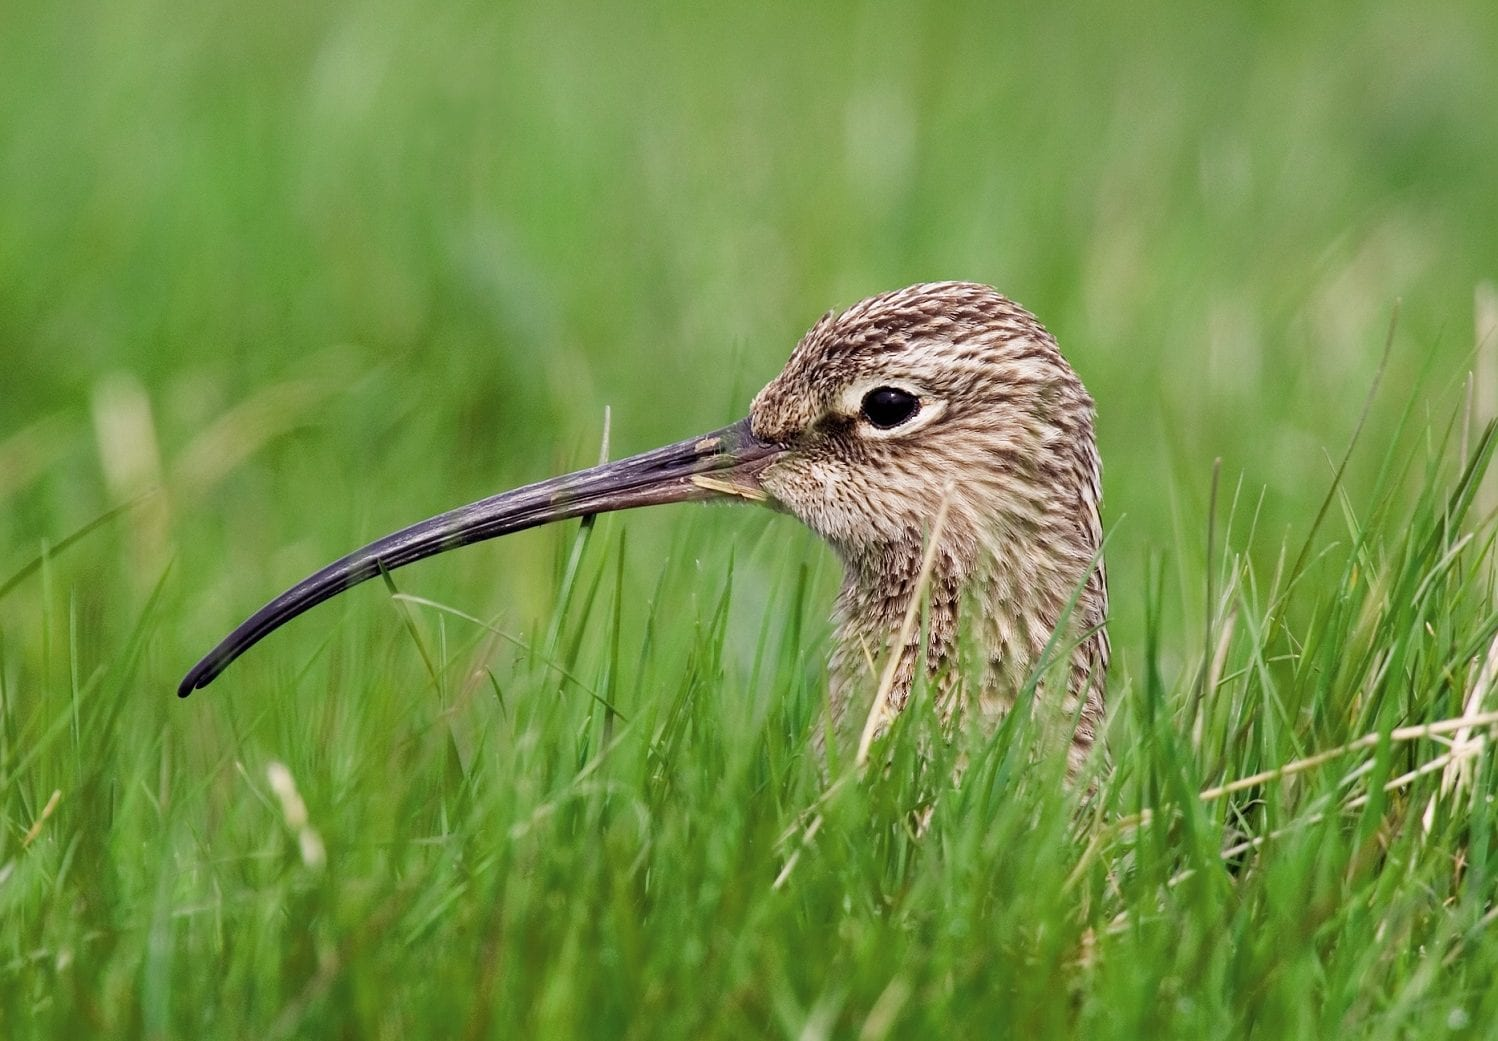 curlew-nesting-grass